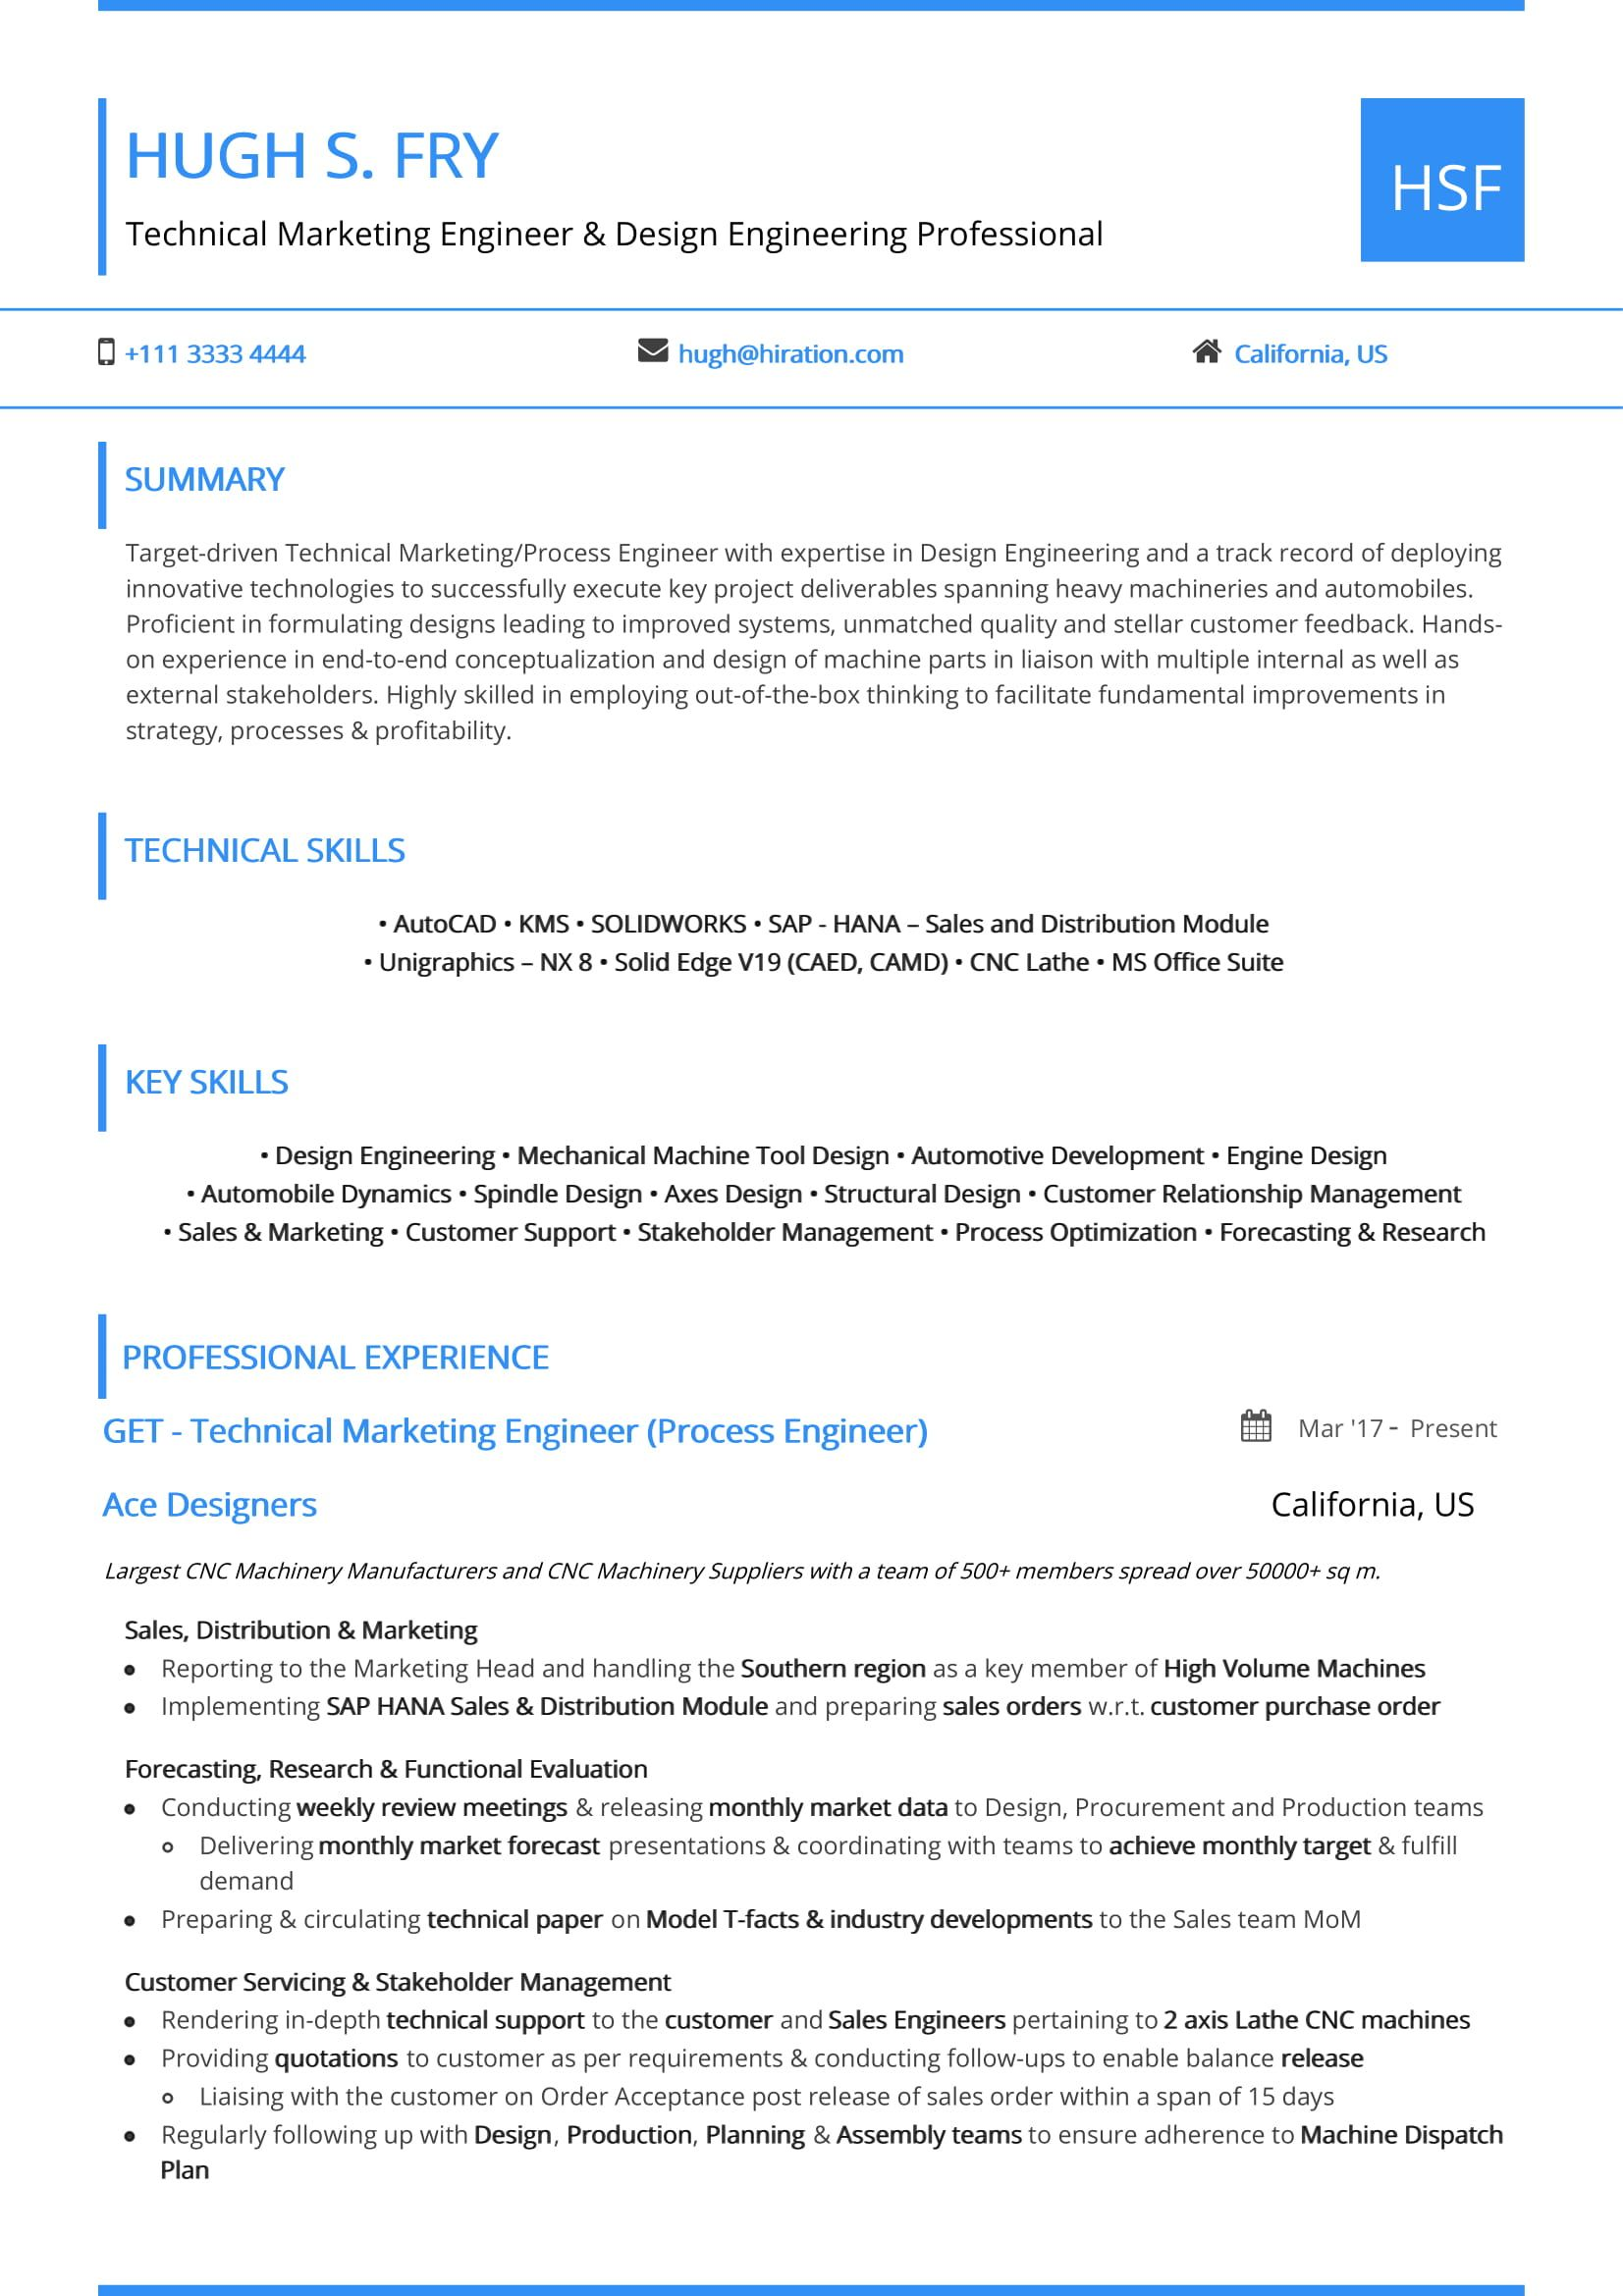 skills to put on resume the guide with sample you should your tech marketing project Resume Skills You Should Put On Your Resume